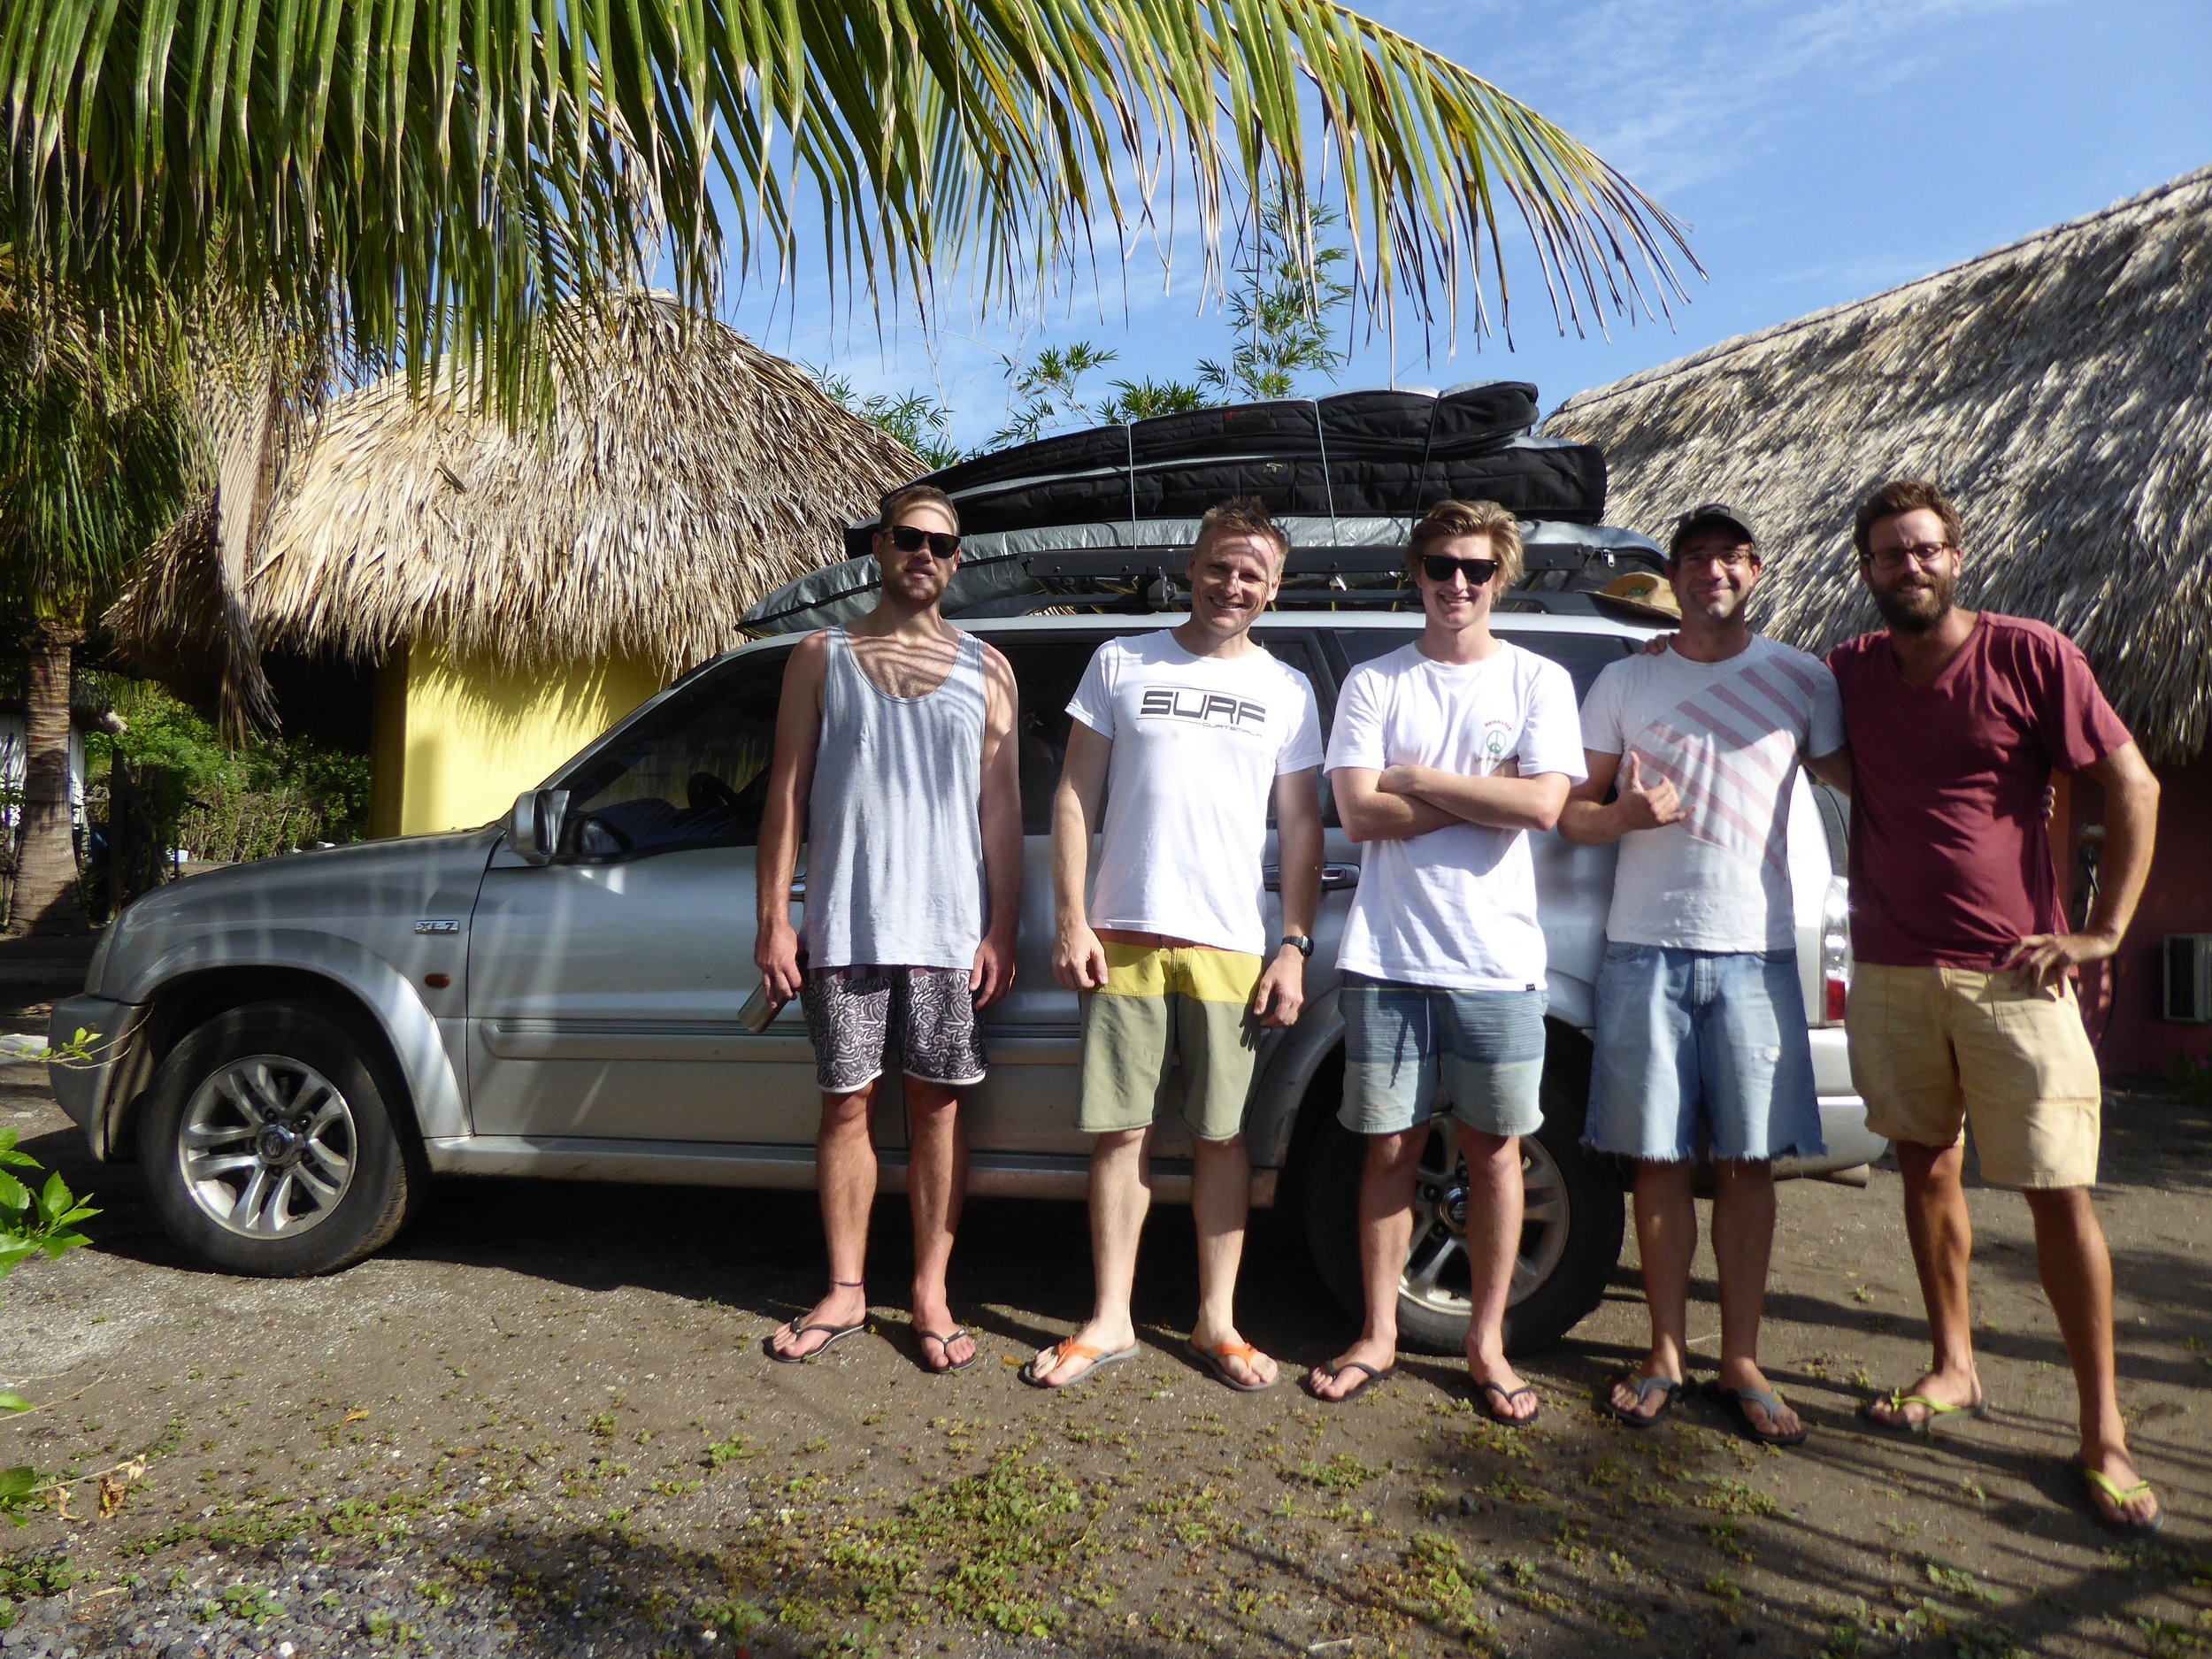 Mike and group of surfers - El Paredon, Guatemala